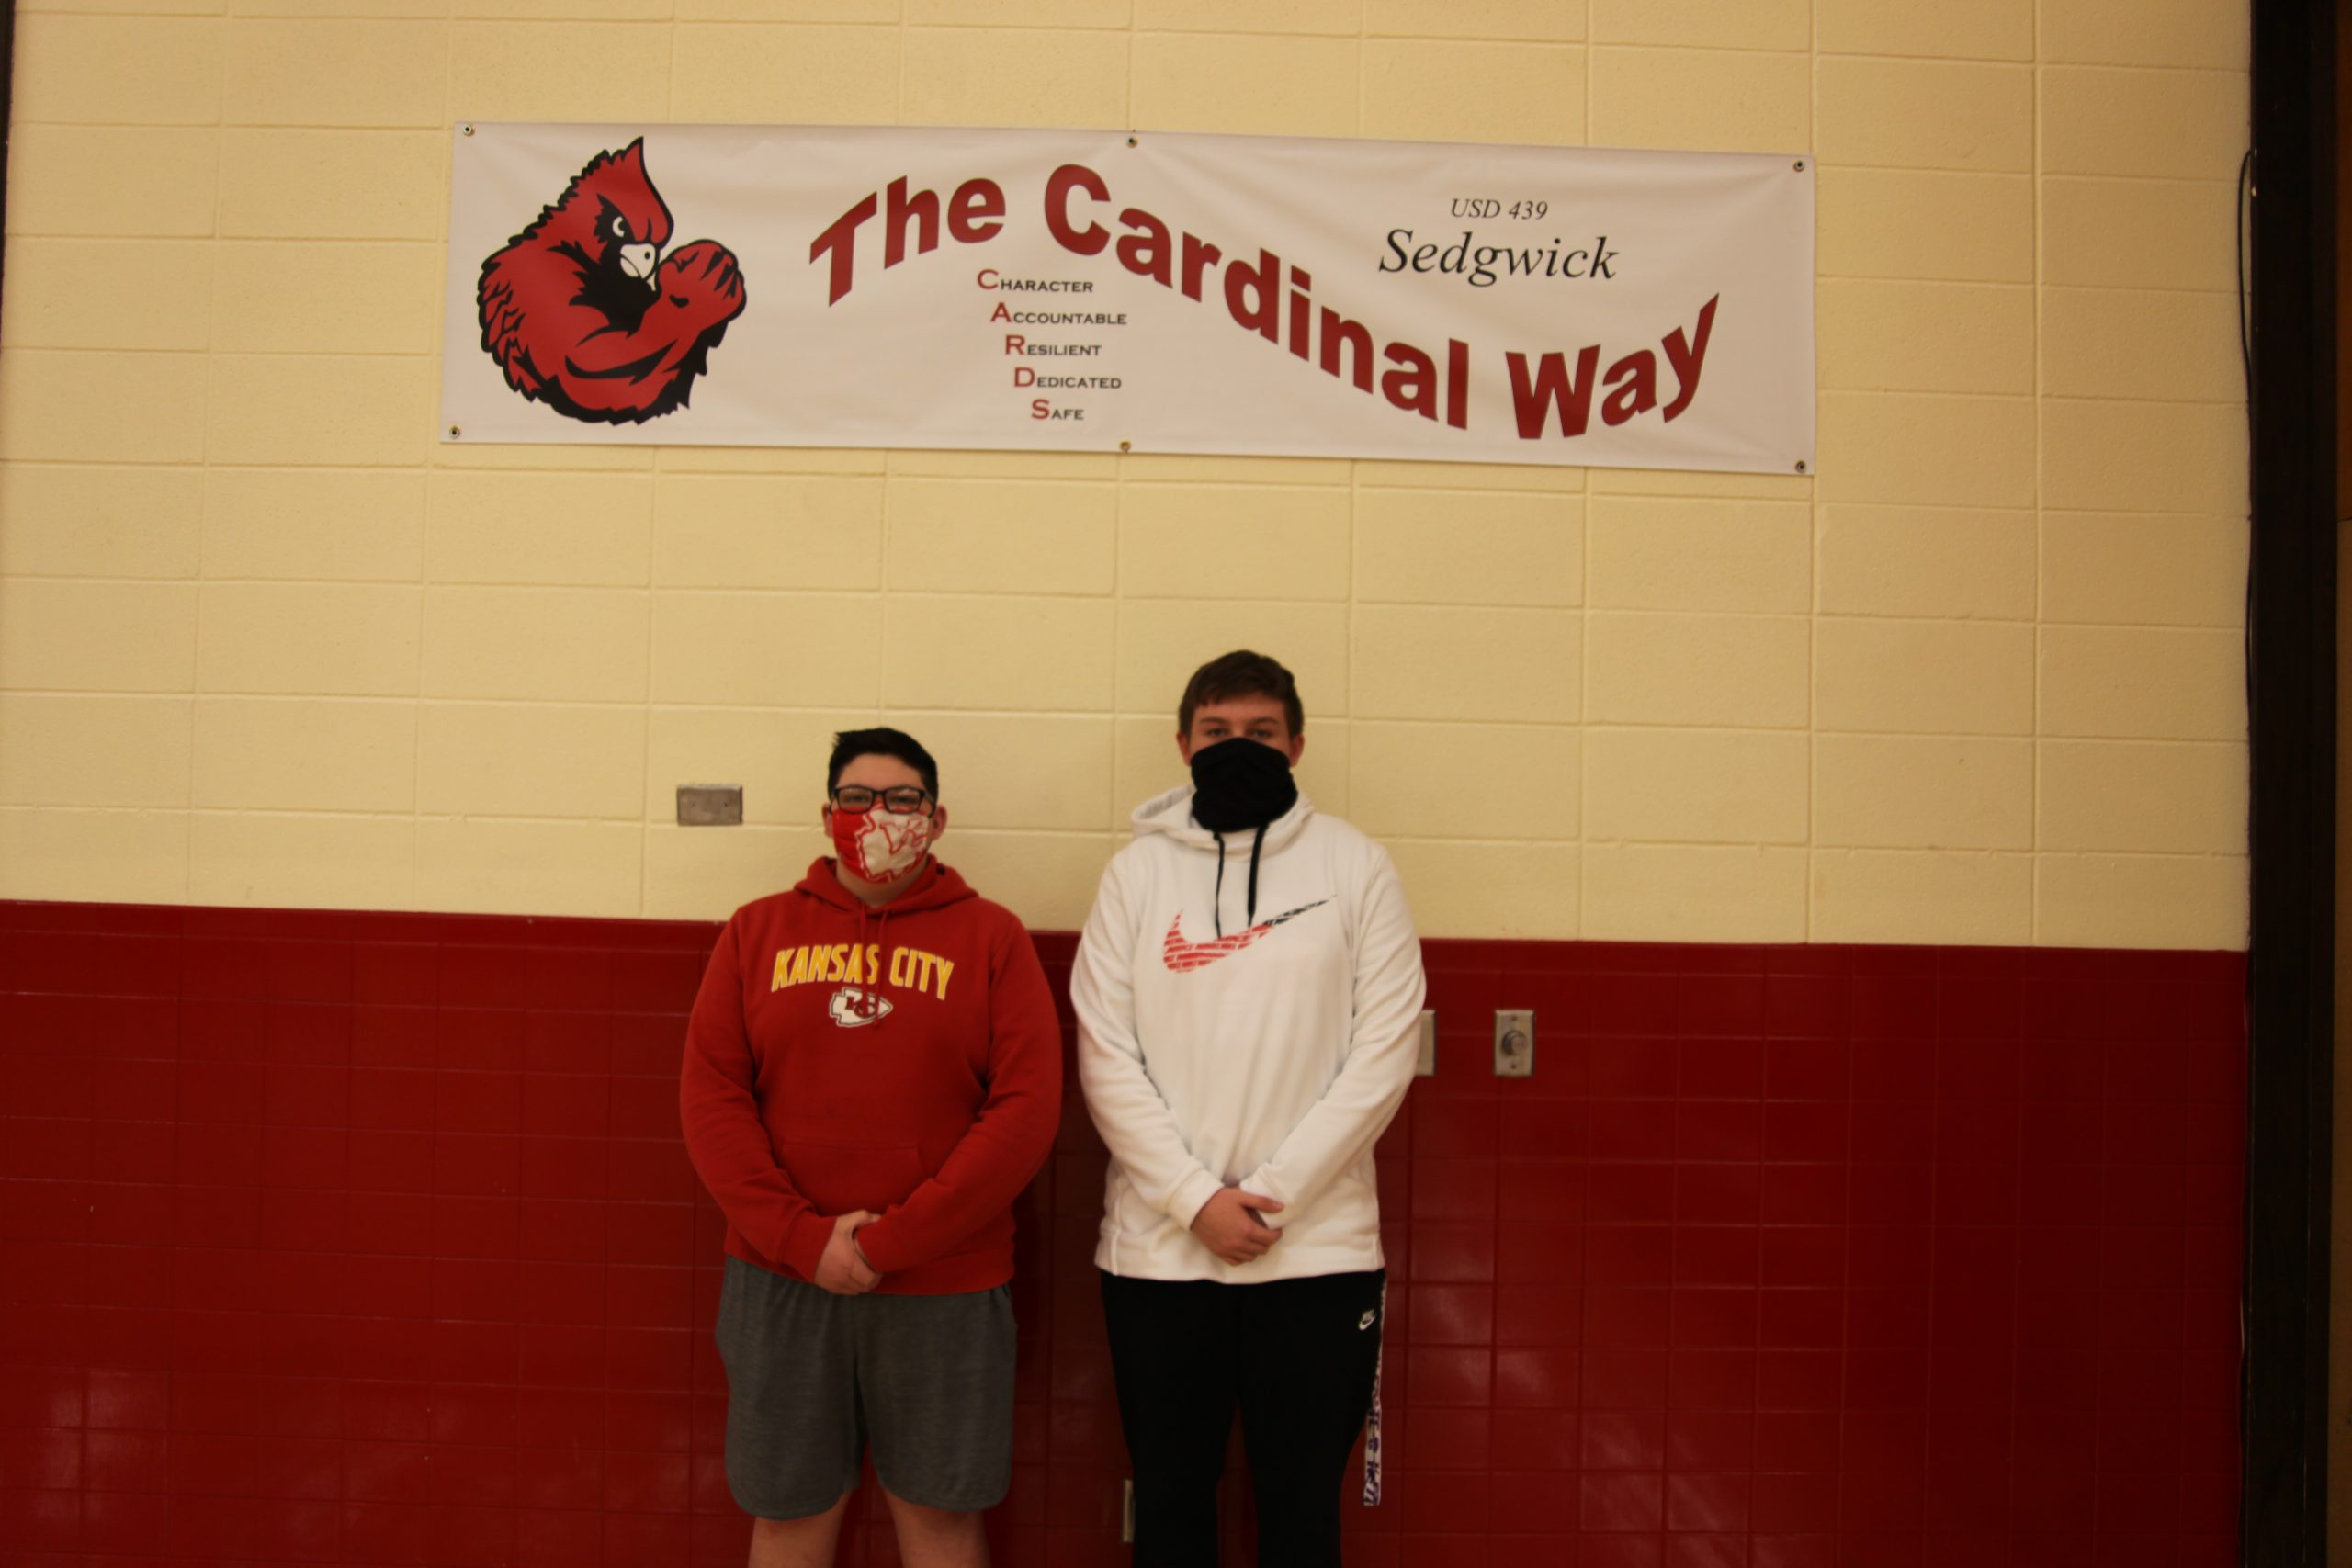 Wilkes and Hansen work behind the scenes for Sedgwick basketball